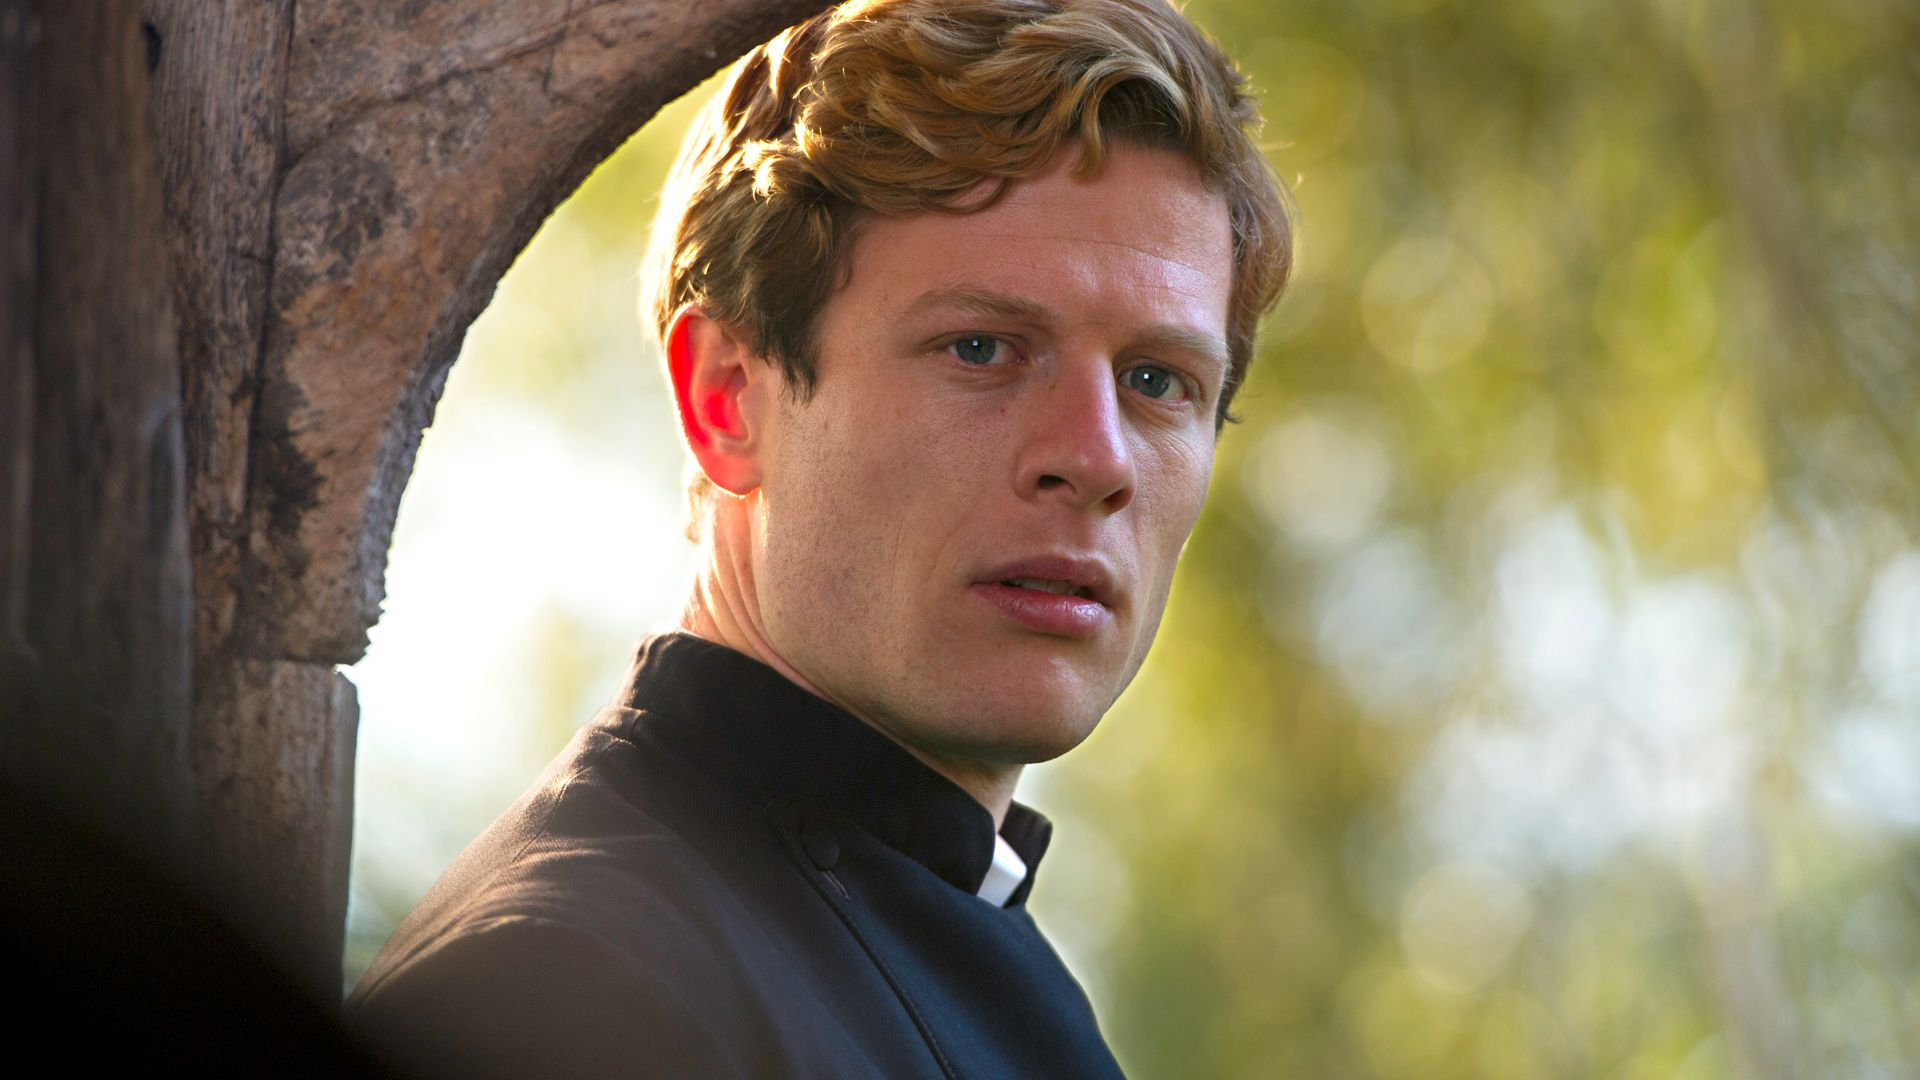 A dashing vicar detective is presented by pBS Masterpiece in 'Grantchester'